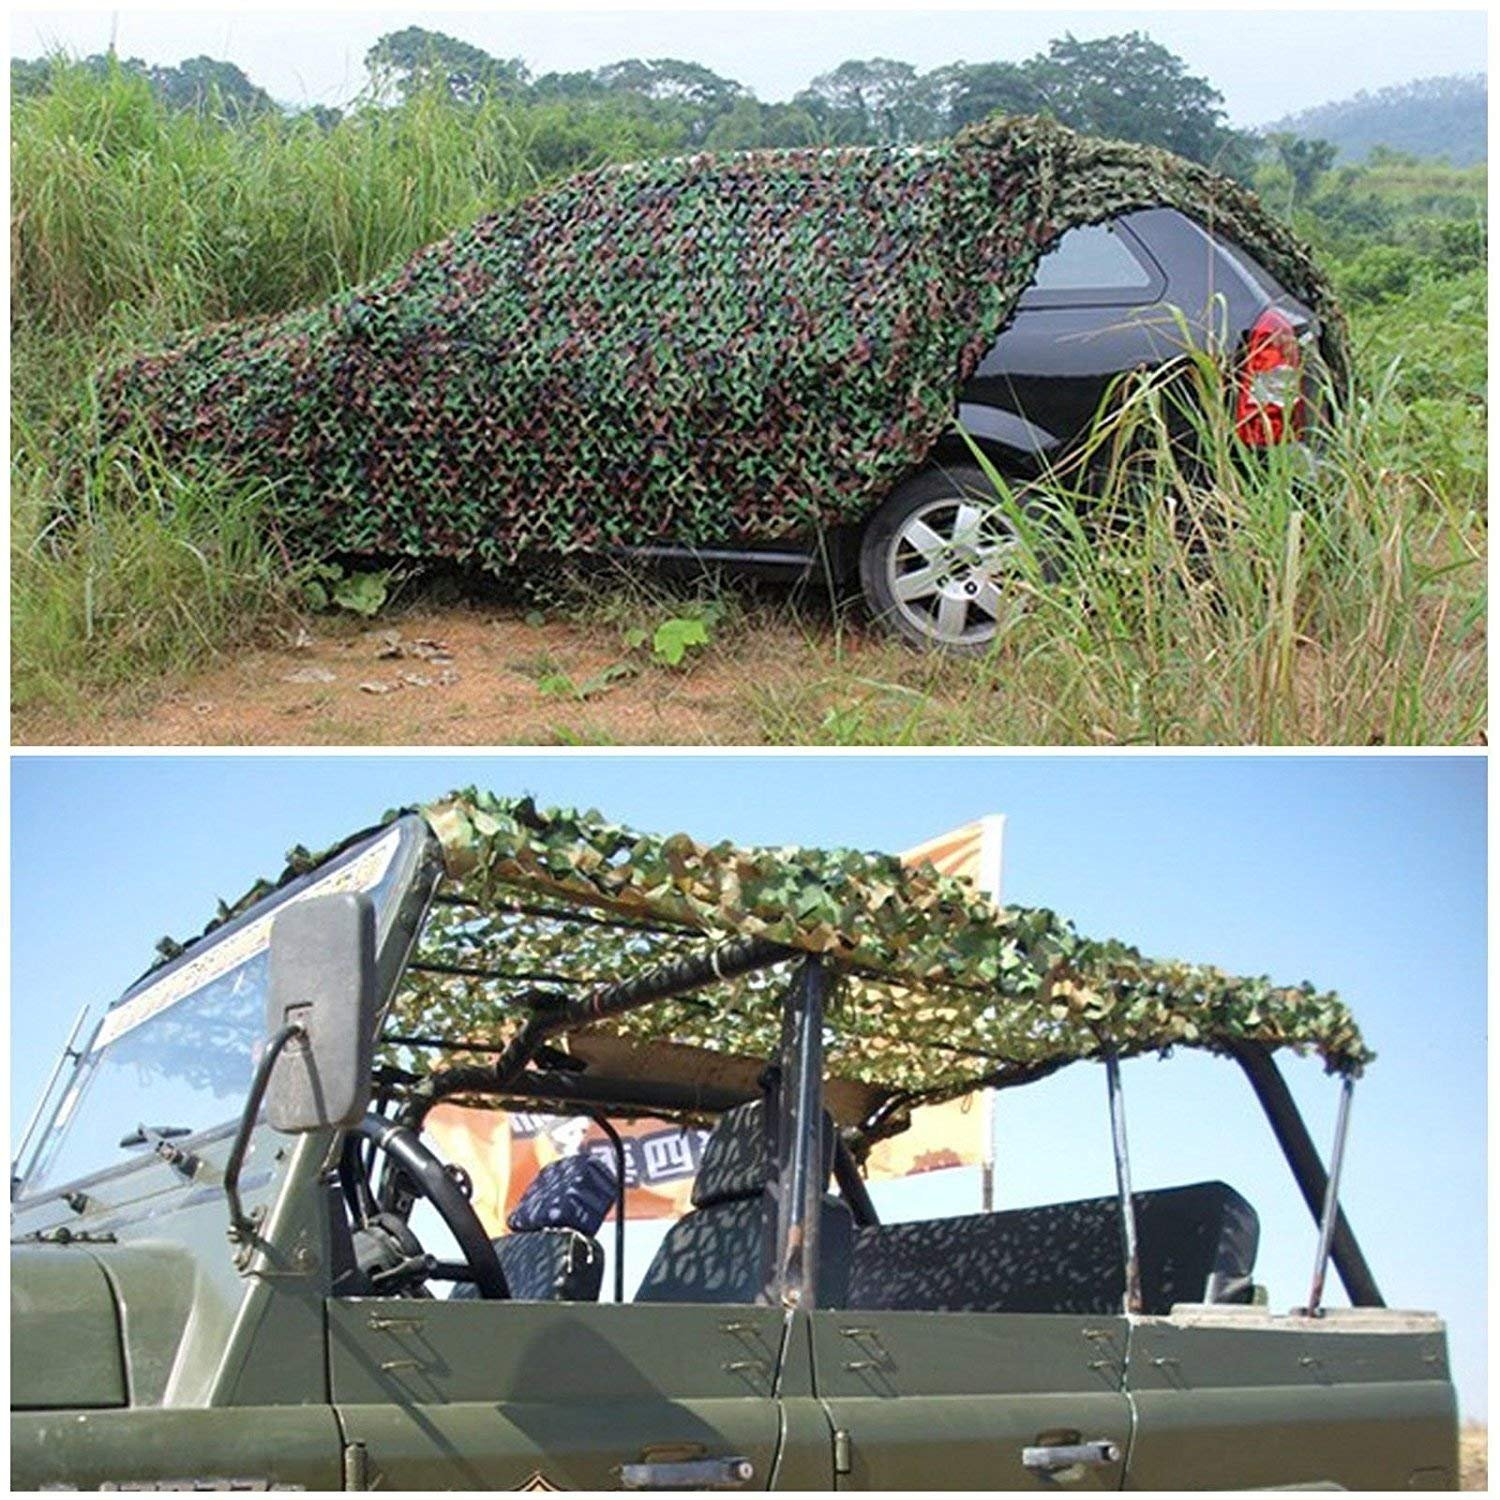 INorton Camo Netting Camouflage Net, 20×20ft Military Camo Mesh Netting,Hunting Shooting Blind Sunscreen Nets,Fit for Camping,Fishing,Party Decoration